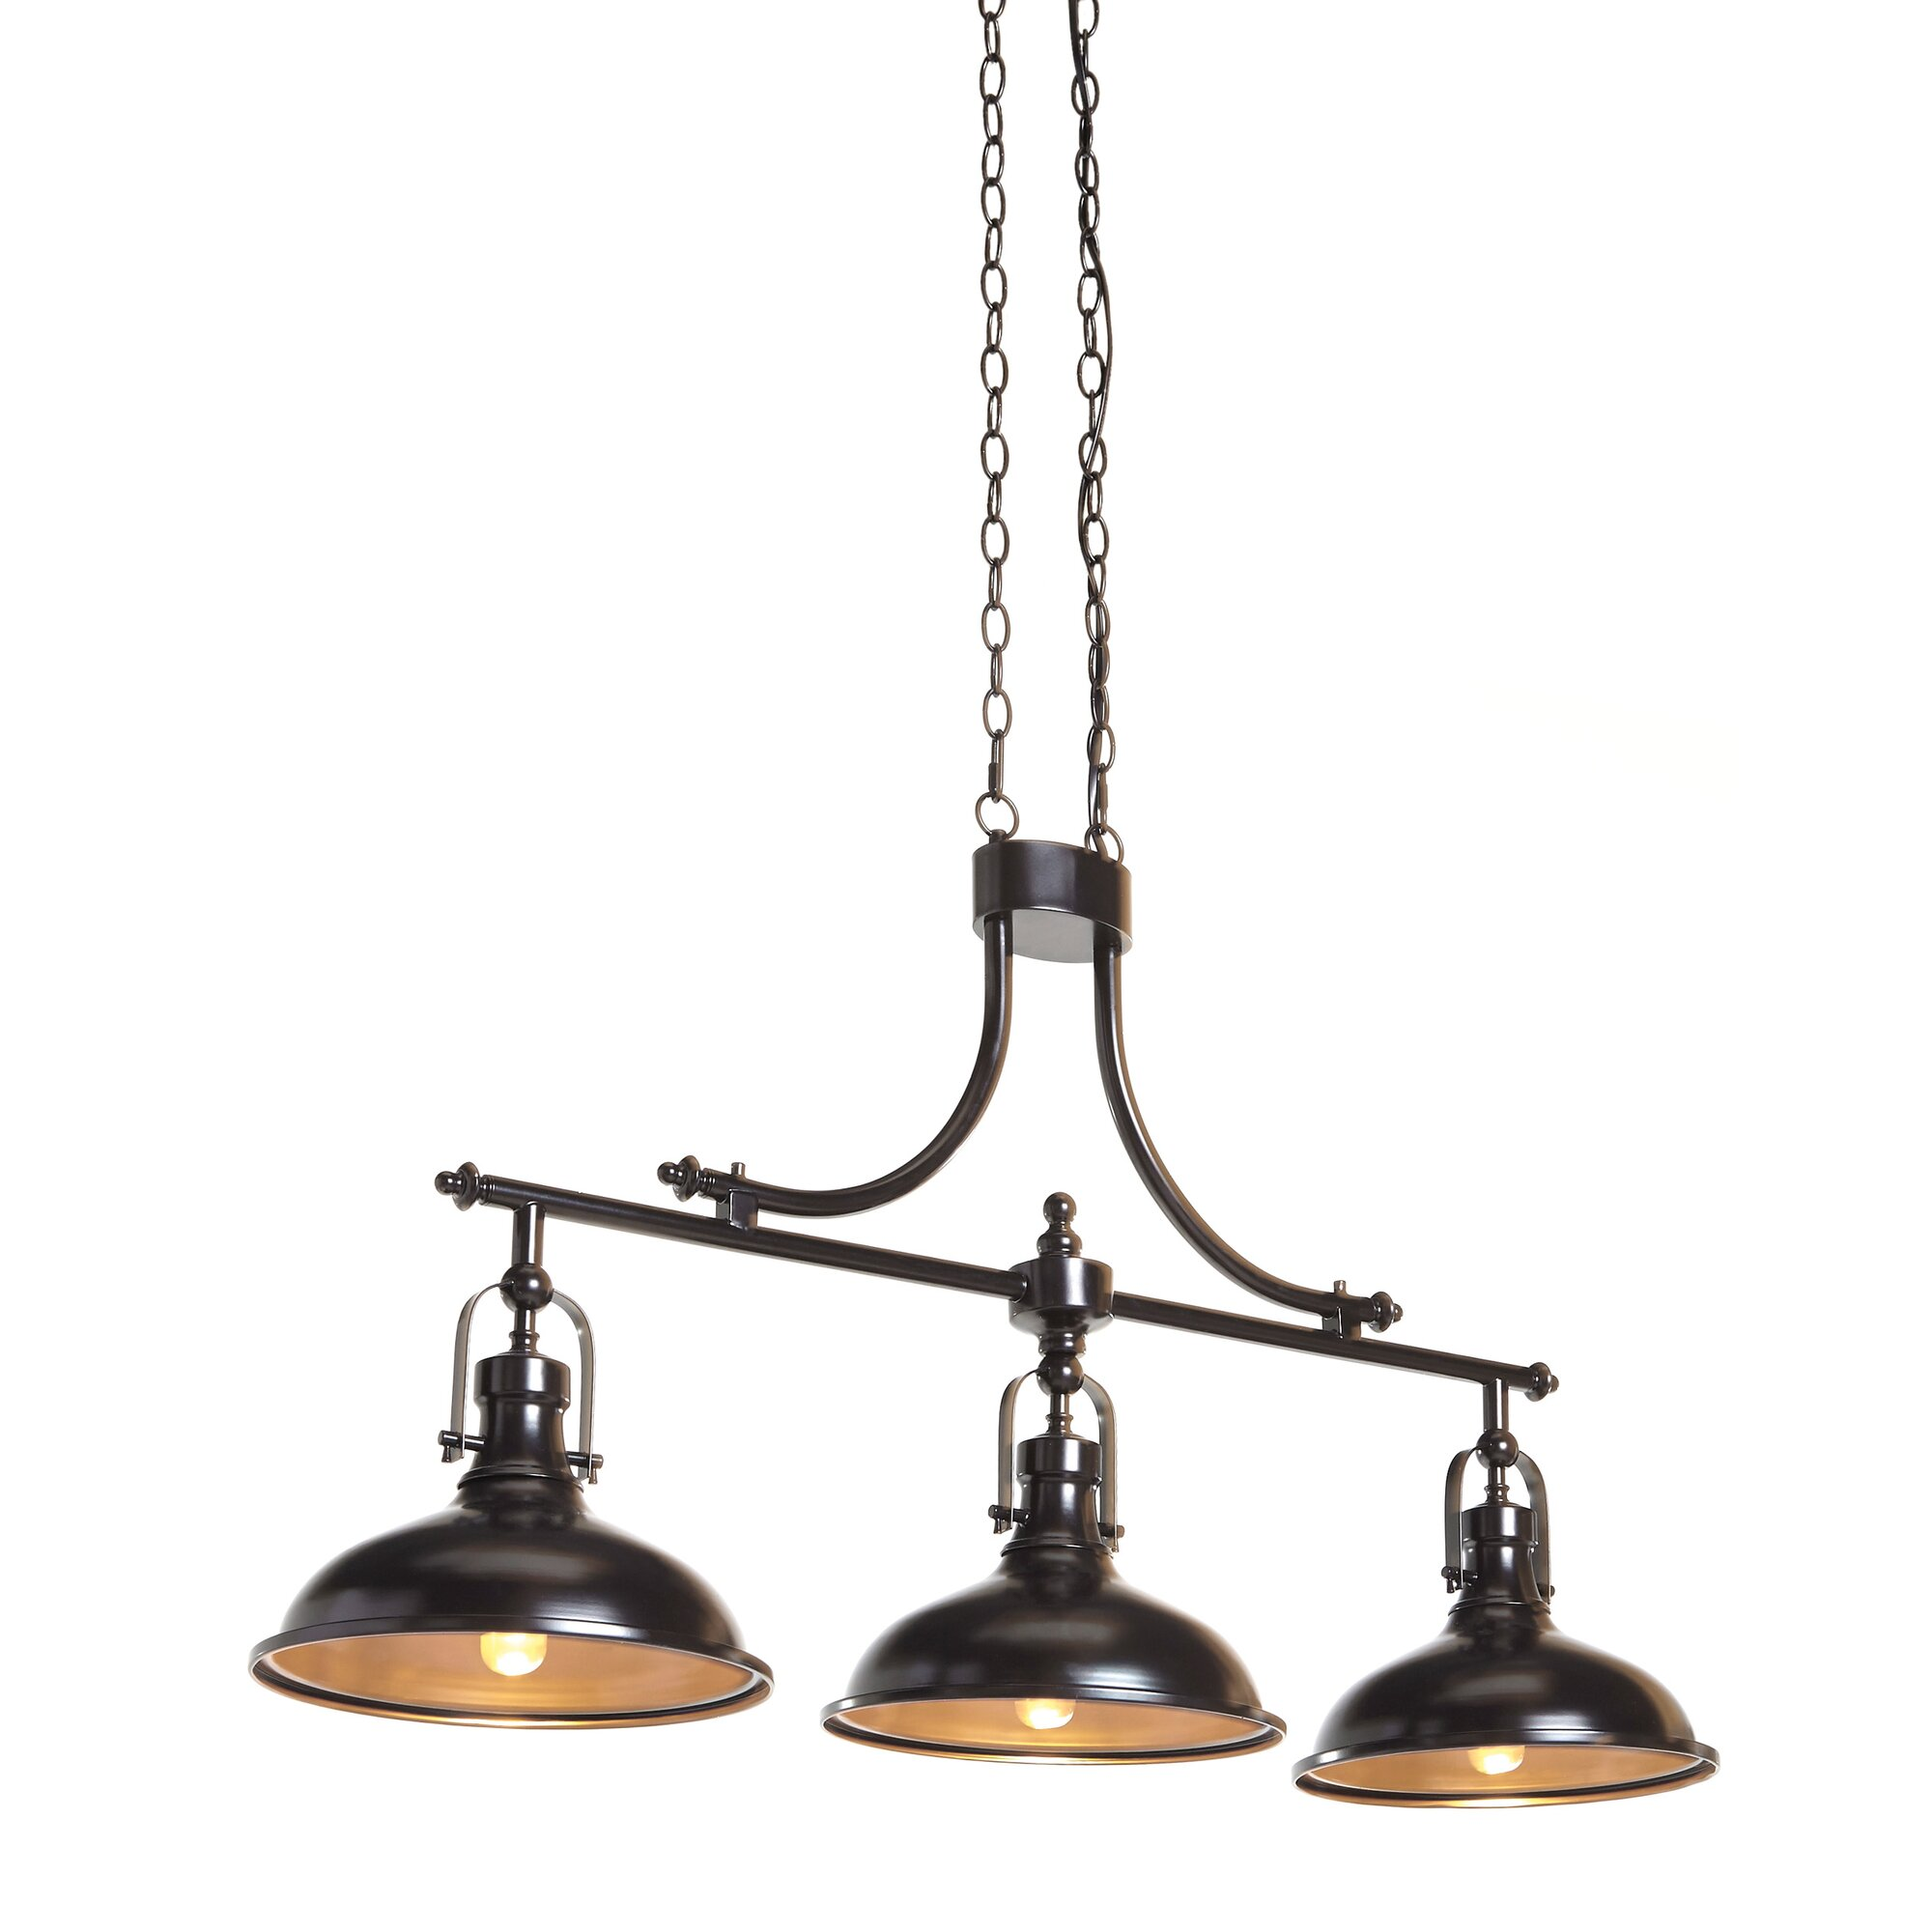 3 light pendant island kitchen lighting breakwater bay strauss 3 light kitchen island pendant 8979